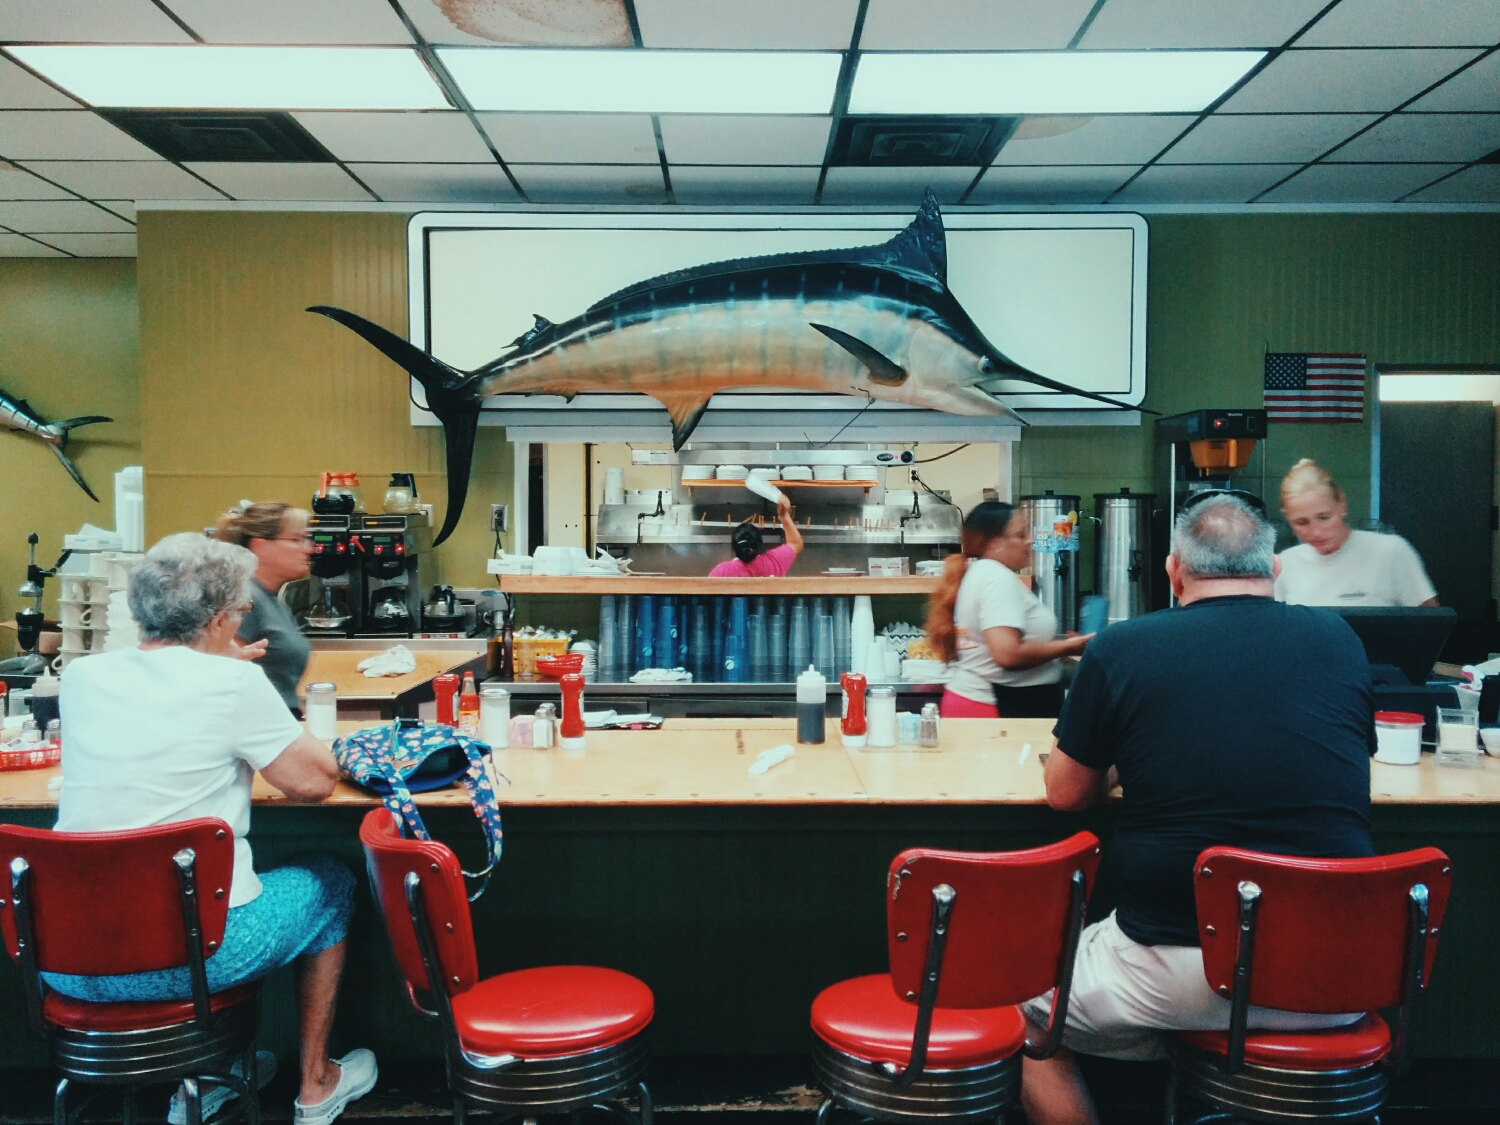 7/14/2016 T.L.'s Family Restaurant in Manteo, Outer Banks, NC